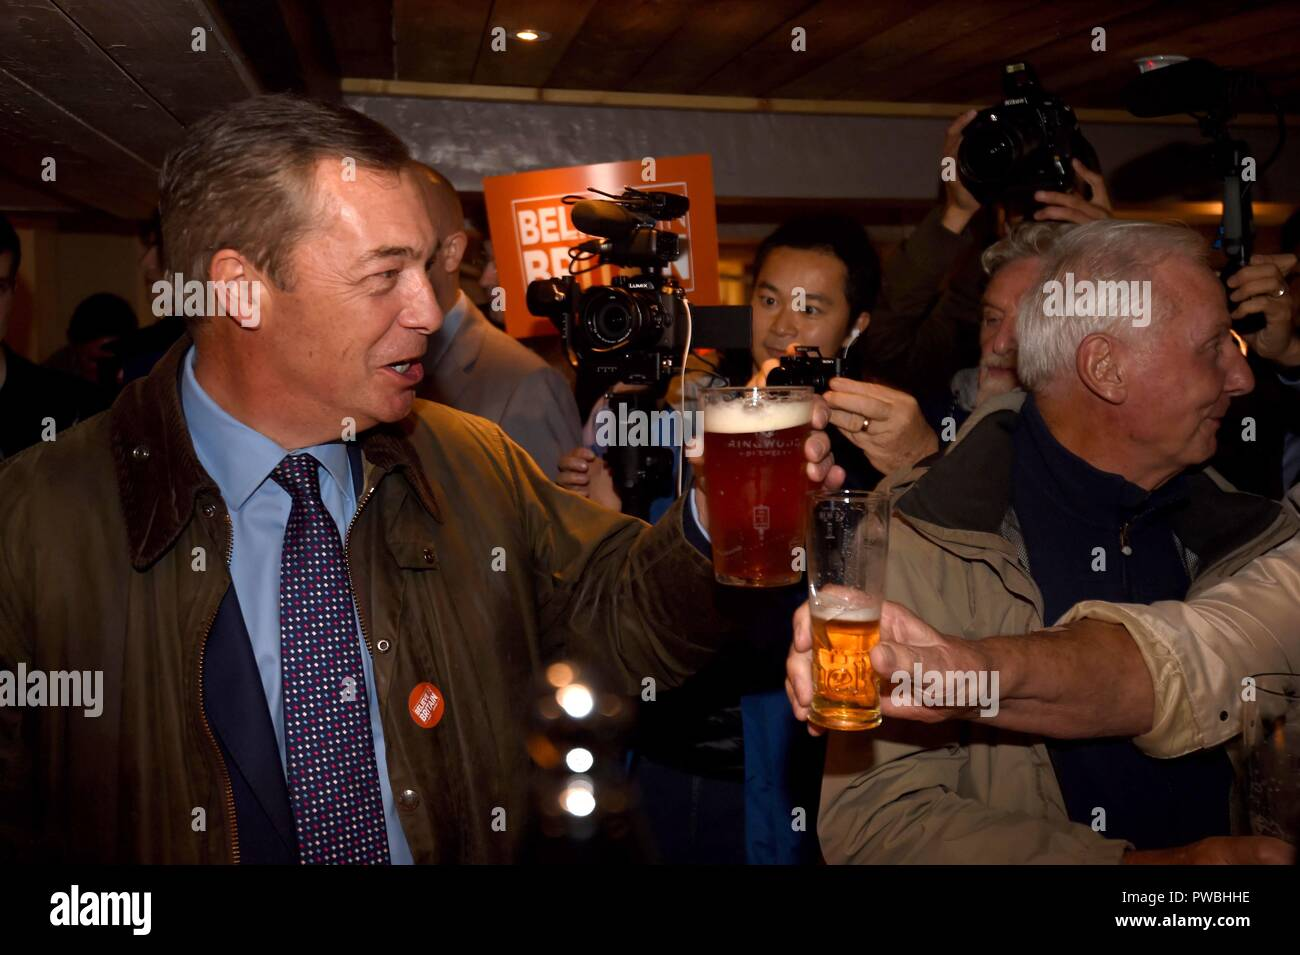 Bournemouth, UK. 15th Oct 2018. Nigel Farage MEP visits Bournemouth's Christchurch Market during the Leave Means Leave Brexit tour, UK. Pictured visiting The Ship pub for a pint Credit: Finnbarr Webster/Alamy Live News - Stock Image